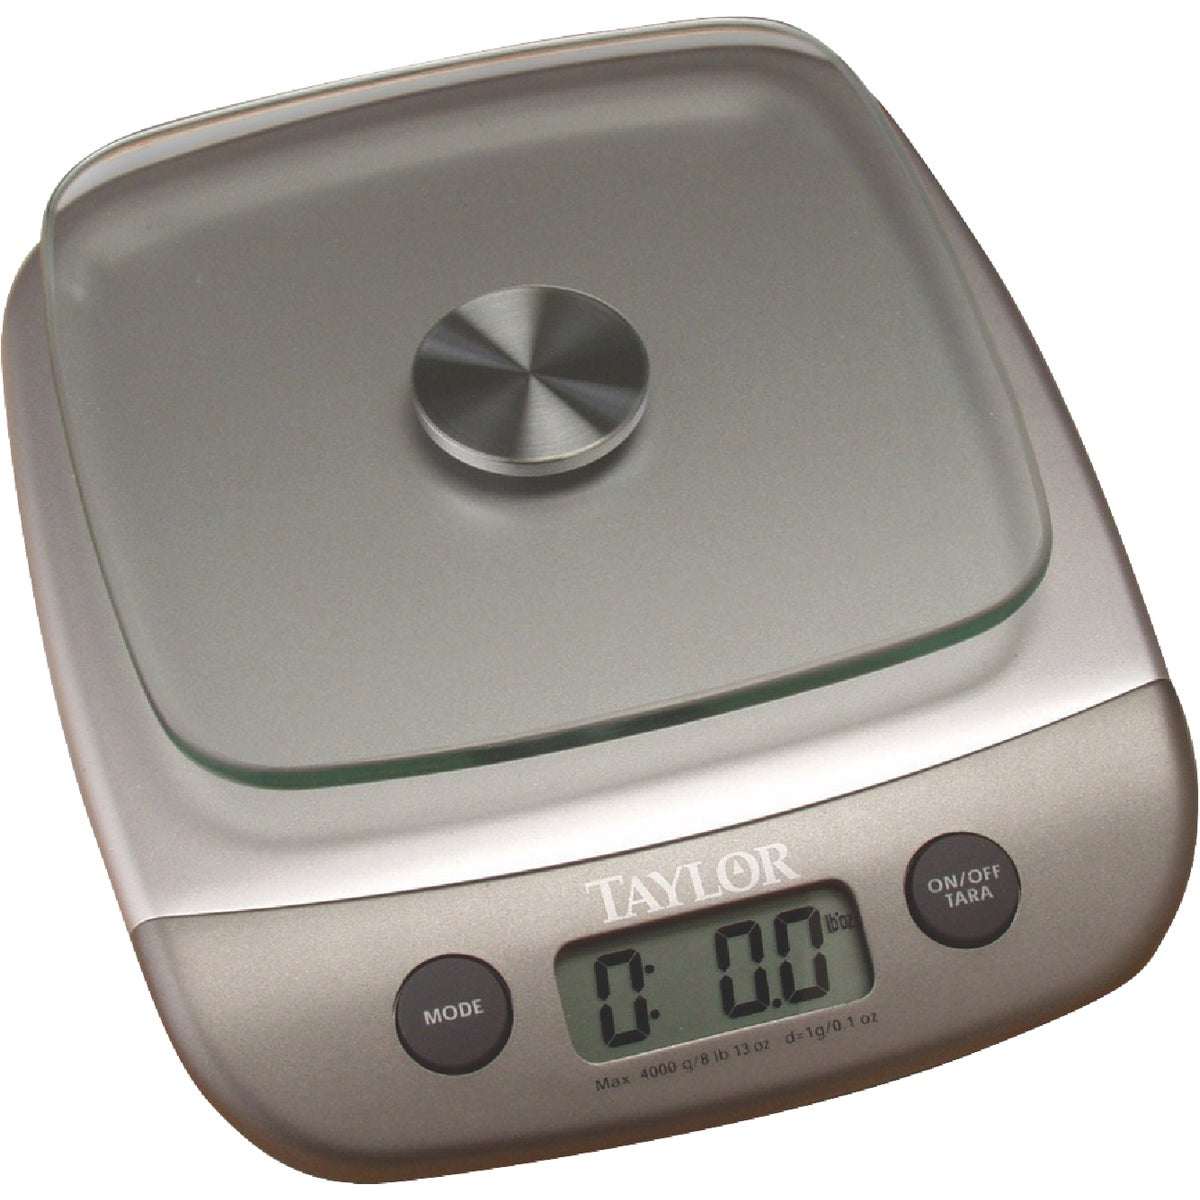 8LB DIGITAL FOOD SCALE - 3800N by Taylor Precision